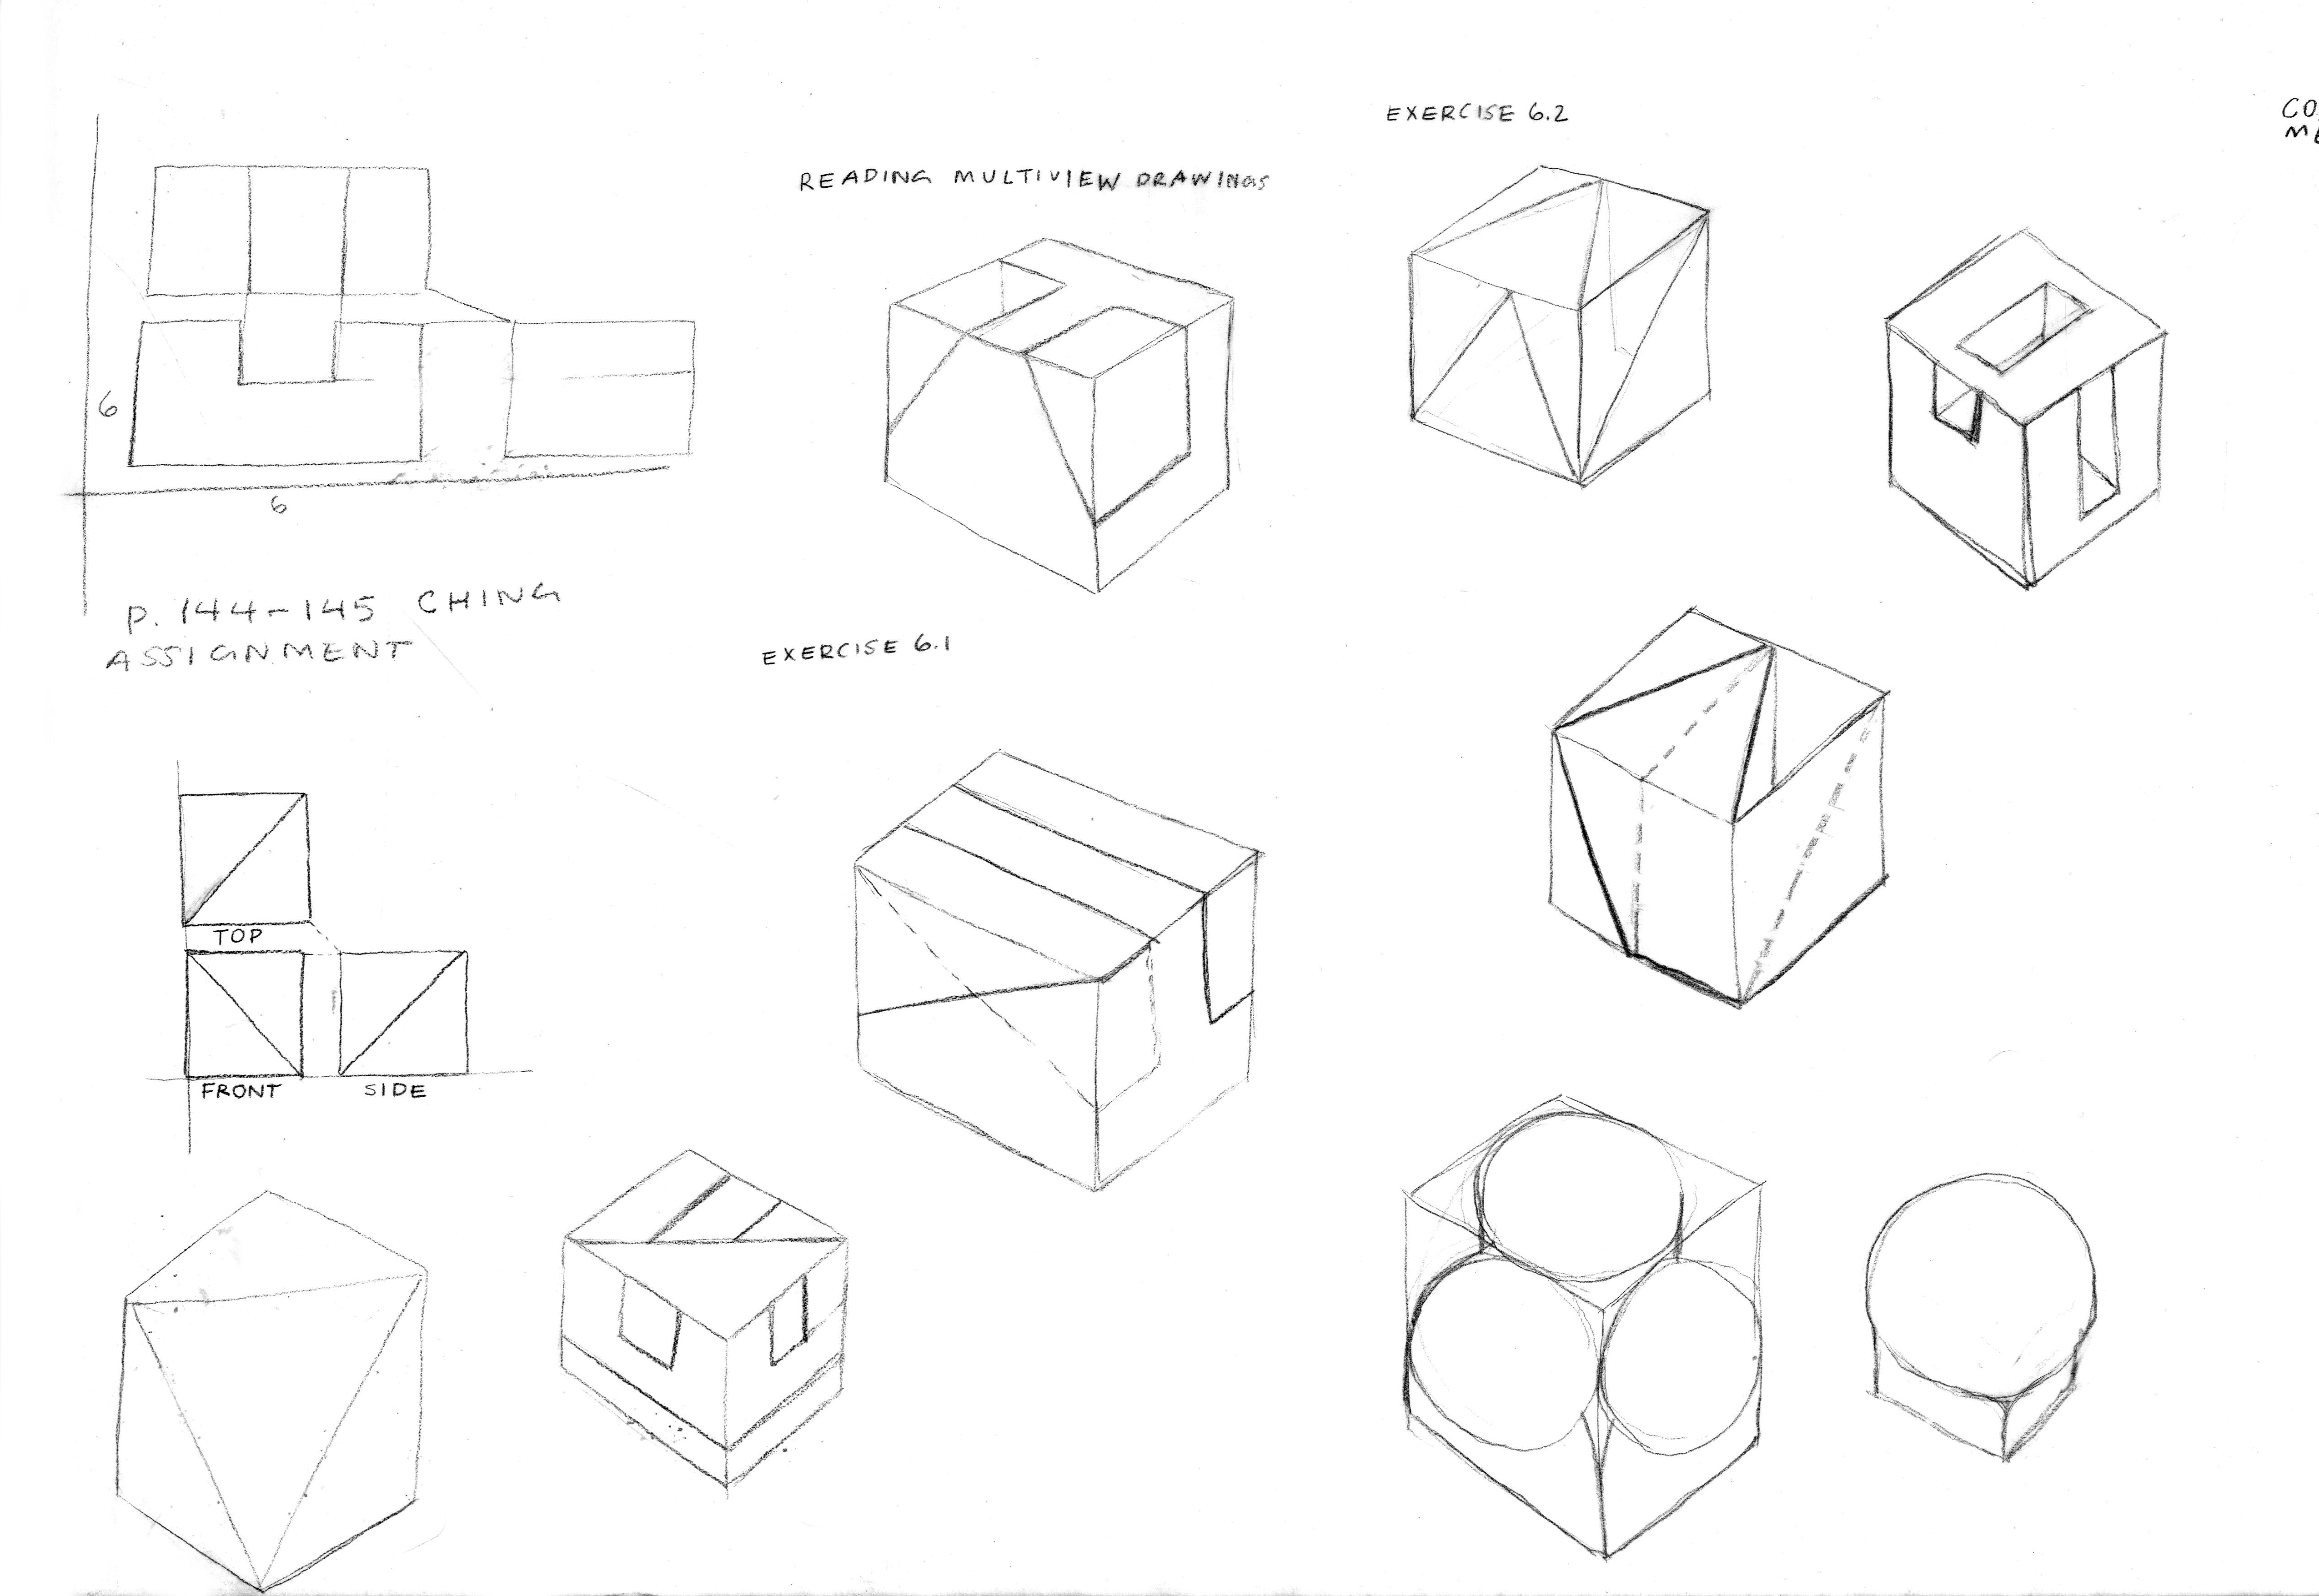 30 Top For Multiview Drawing Exercises